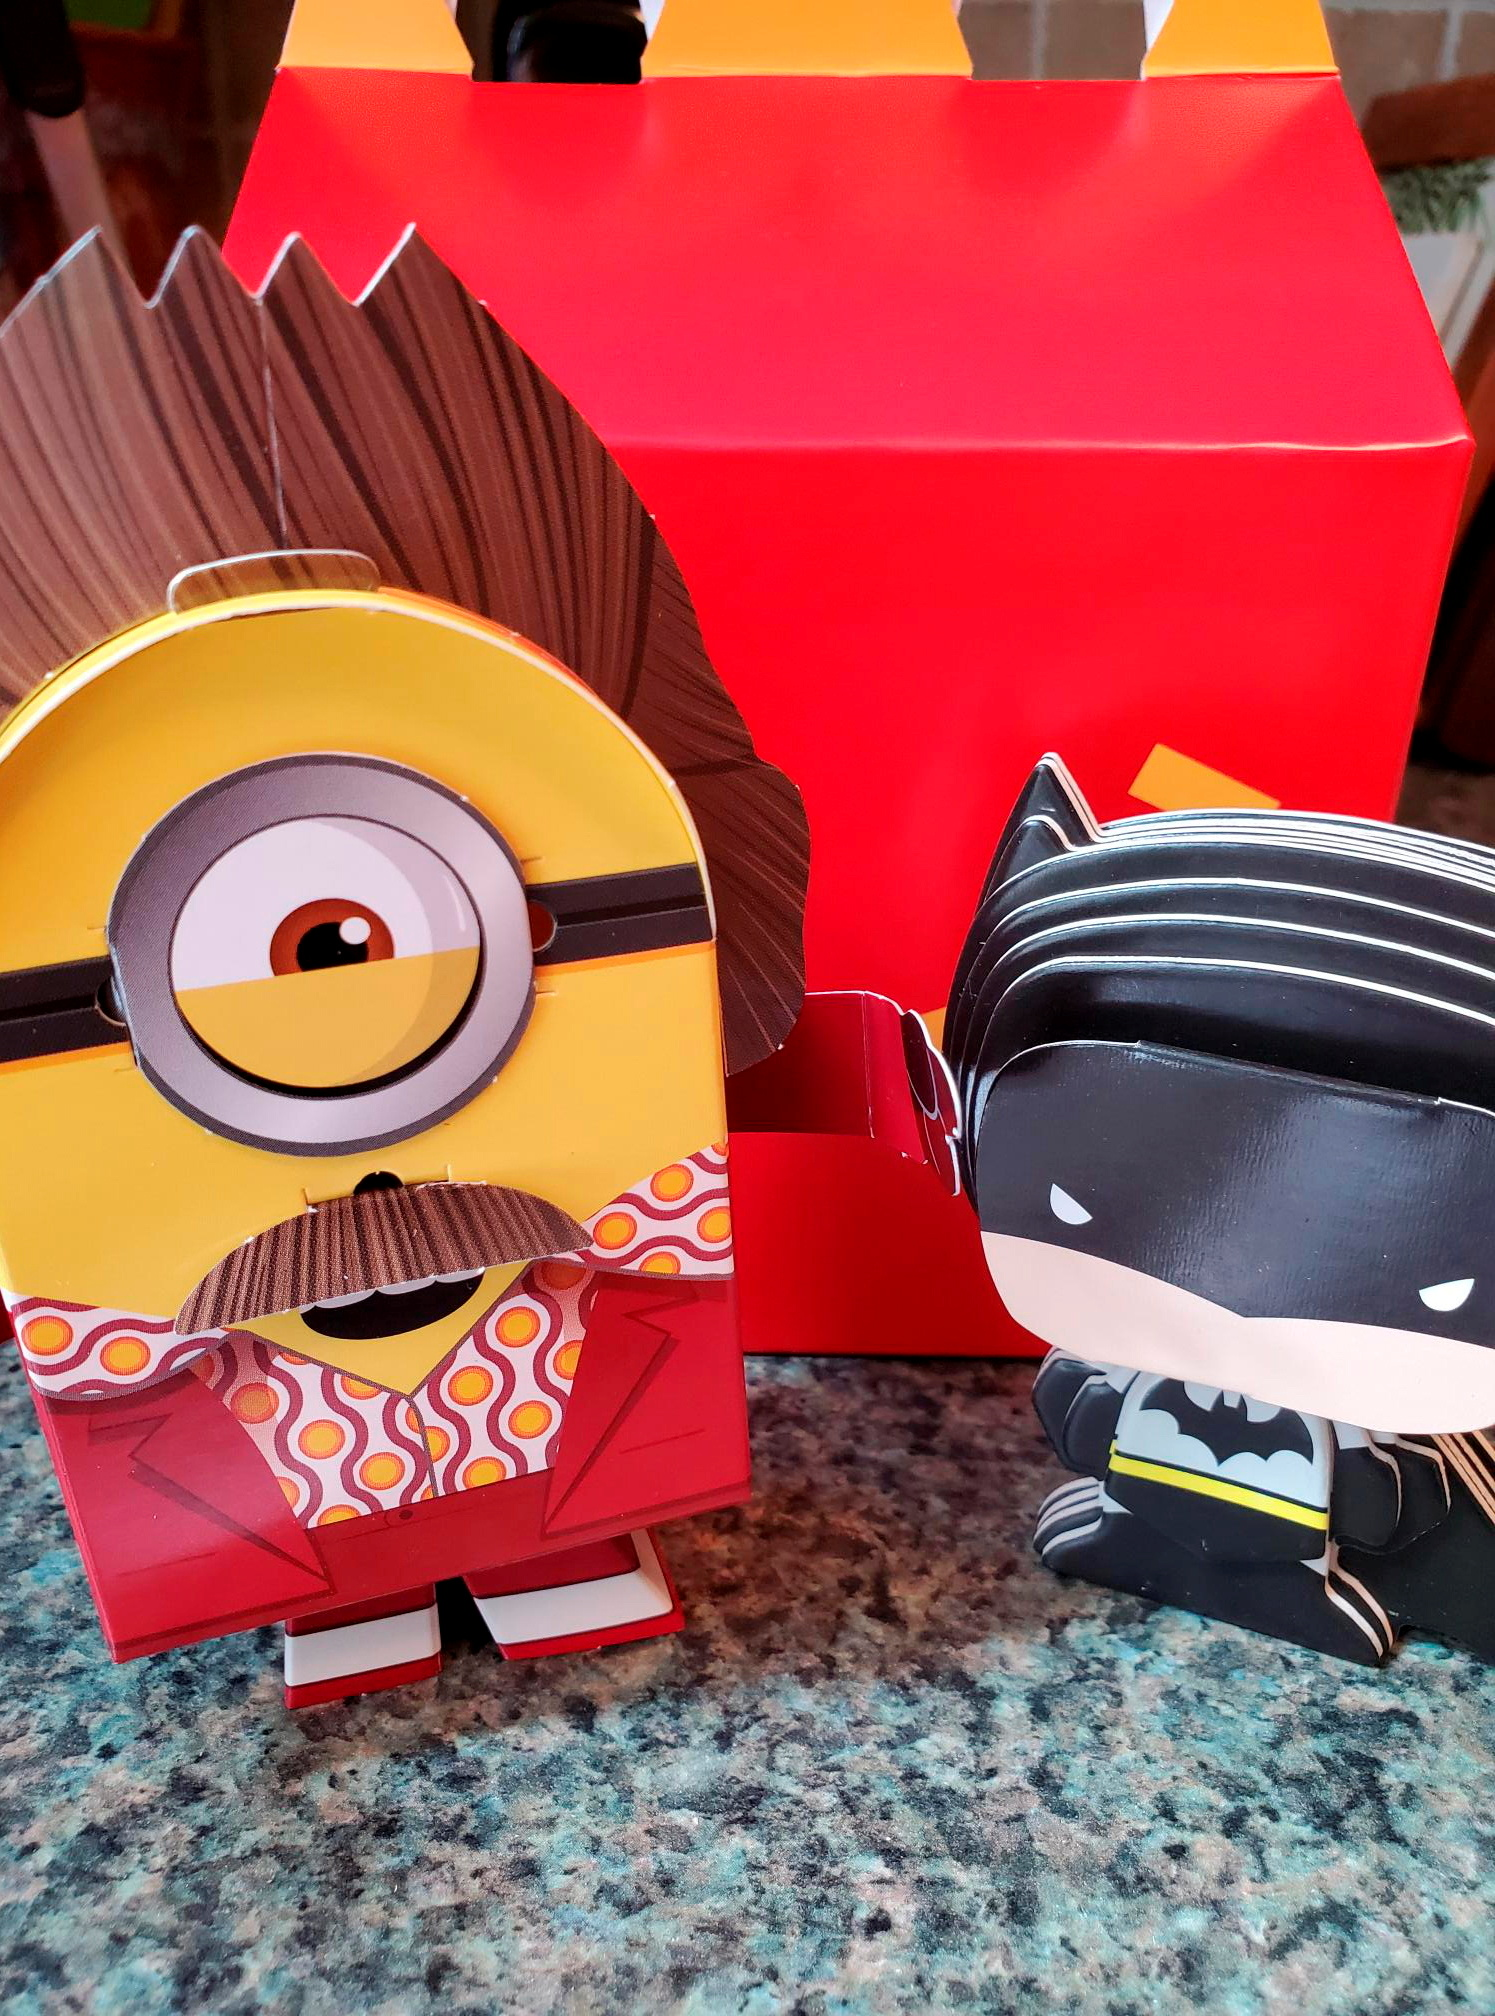 Batman and Minions toys made from paper and cardboard that children assemble themselves are seen, as McDonald's makes its future Happy Meal toys for kids more sustainable, in New York, U.S. September 20, 2021. REUTERS/Hilary Russ